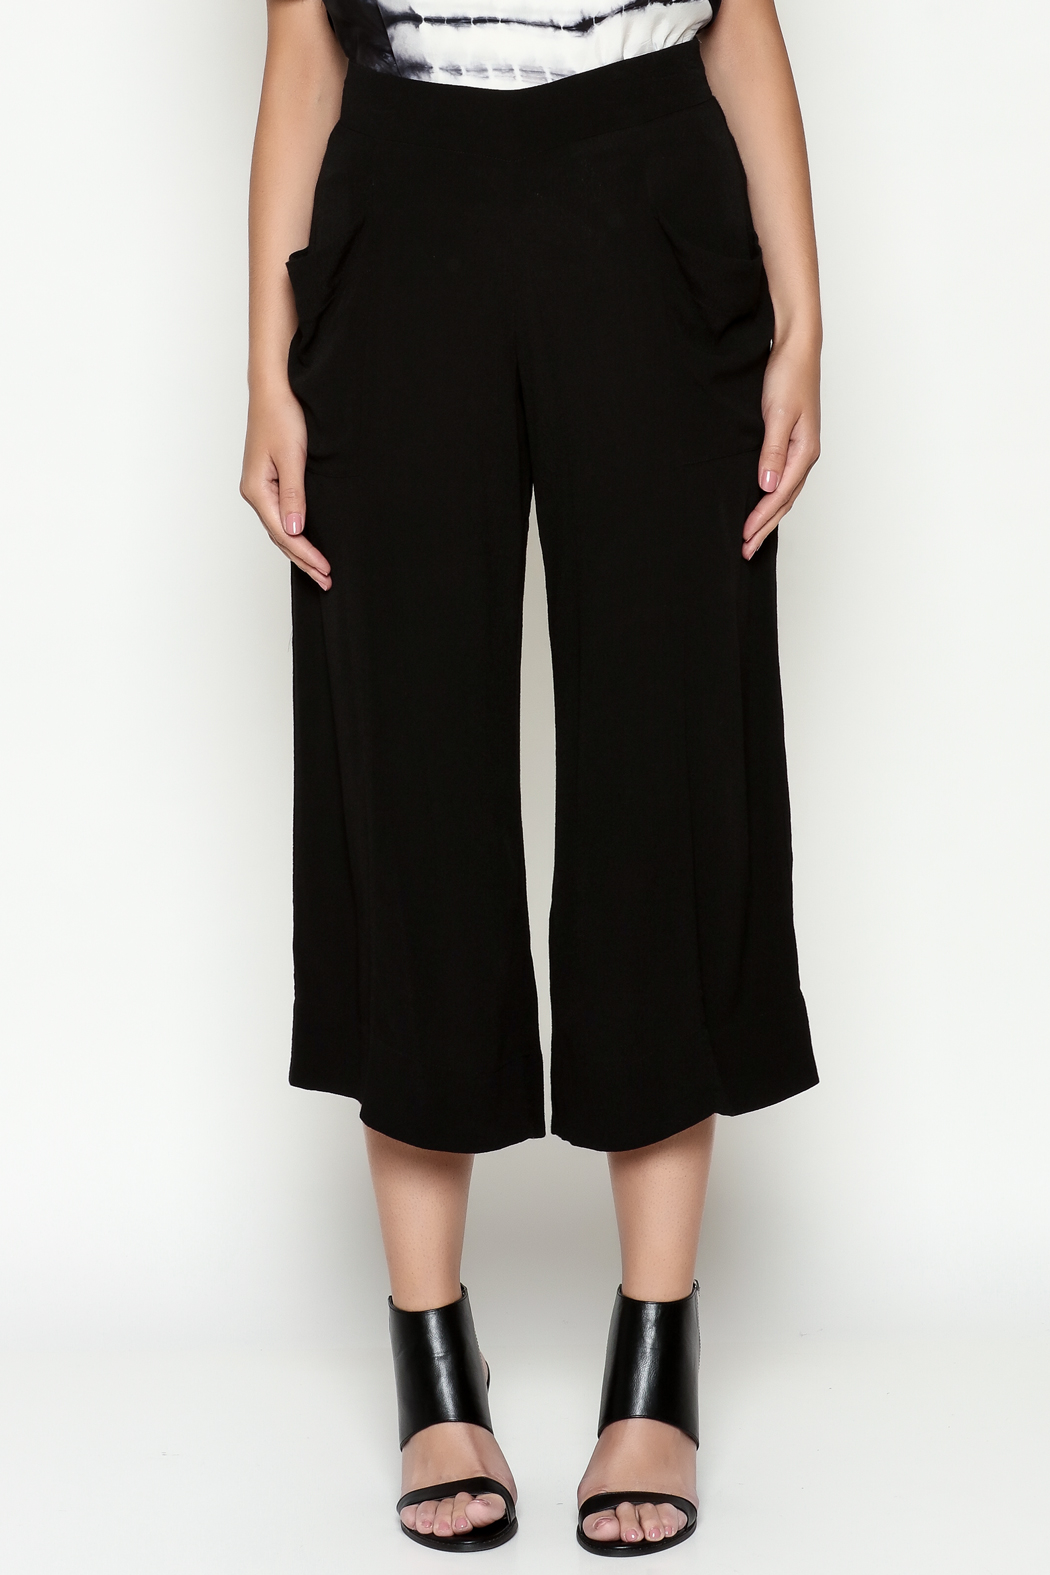 Cousin Earl Black Palazzo Pants - Front Full Image